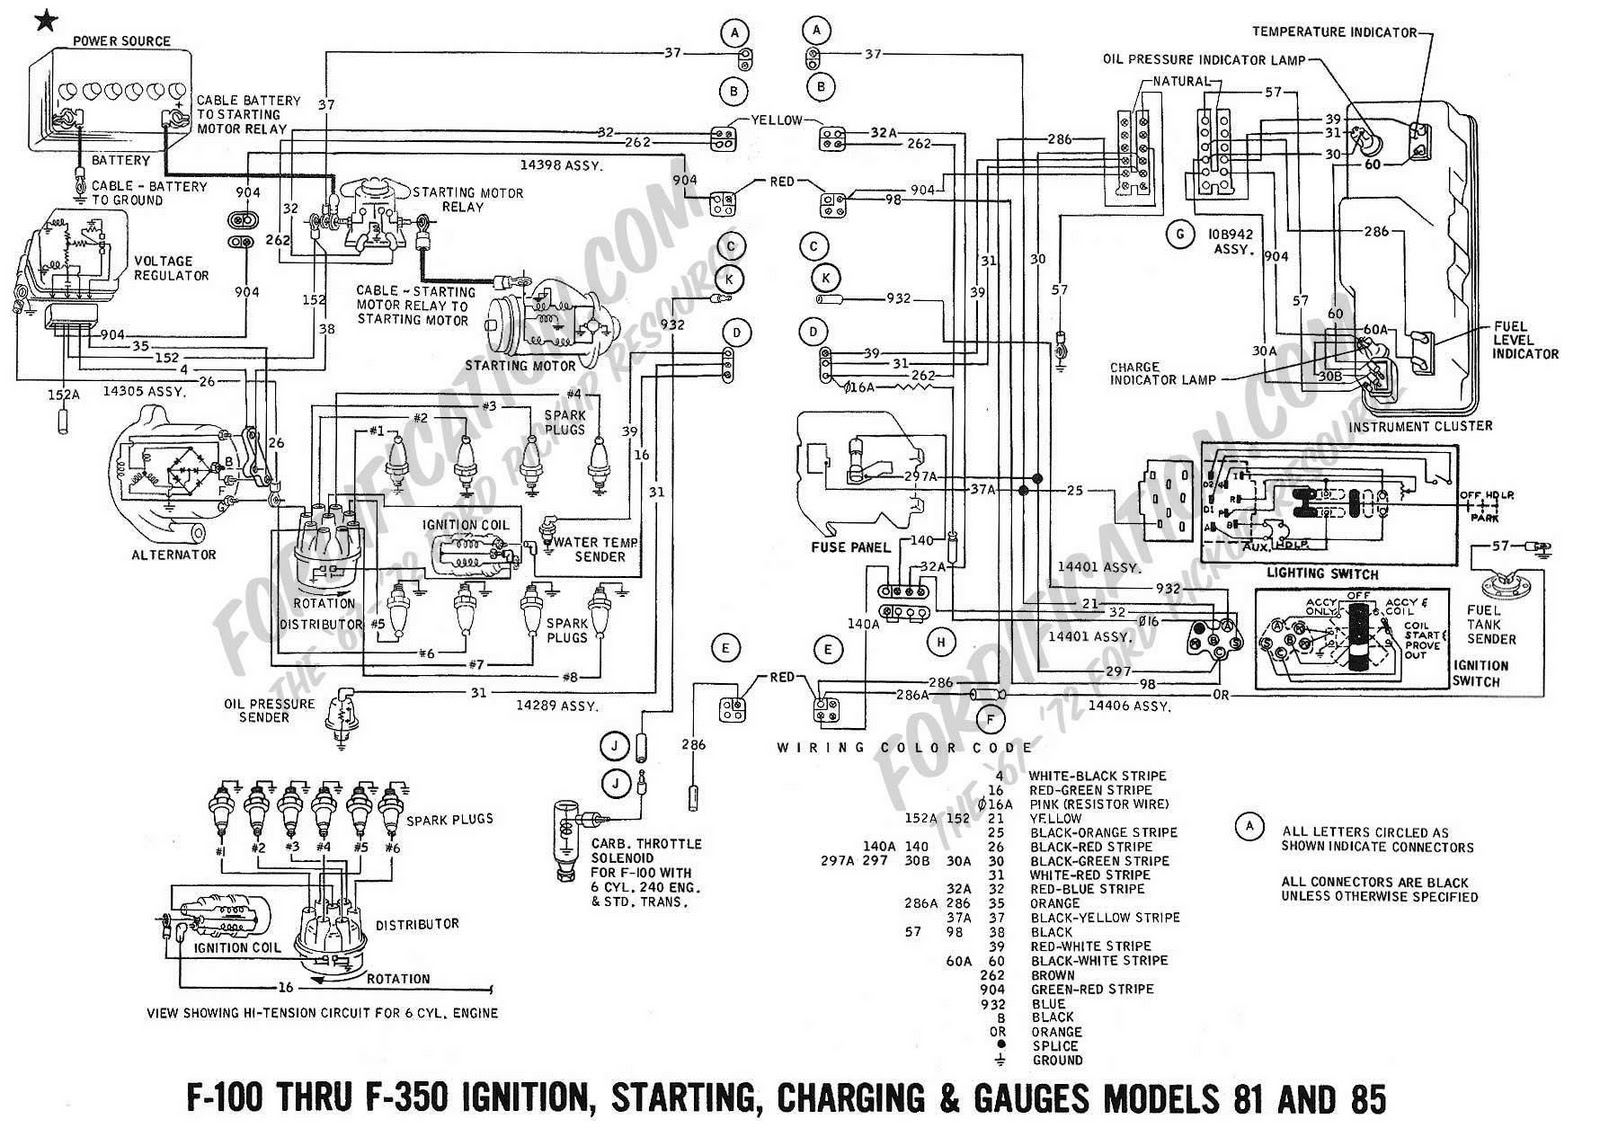 1968 Mustang Wiring Diagram Charging System Circuit And Ford Ignition 1969 F100 F350 Starting Backup Light Switch